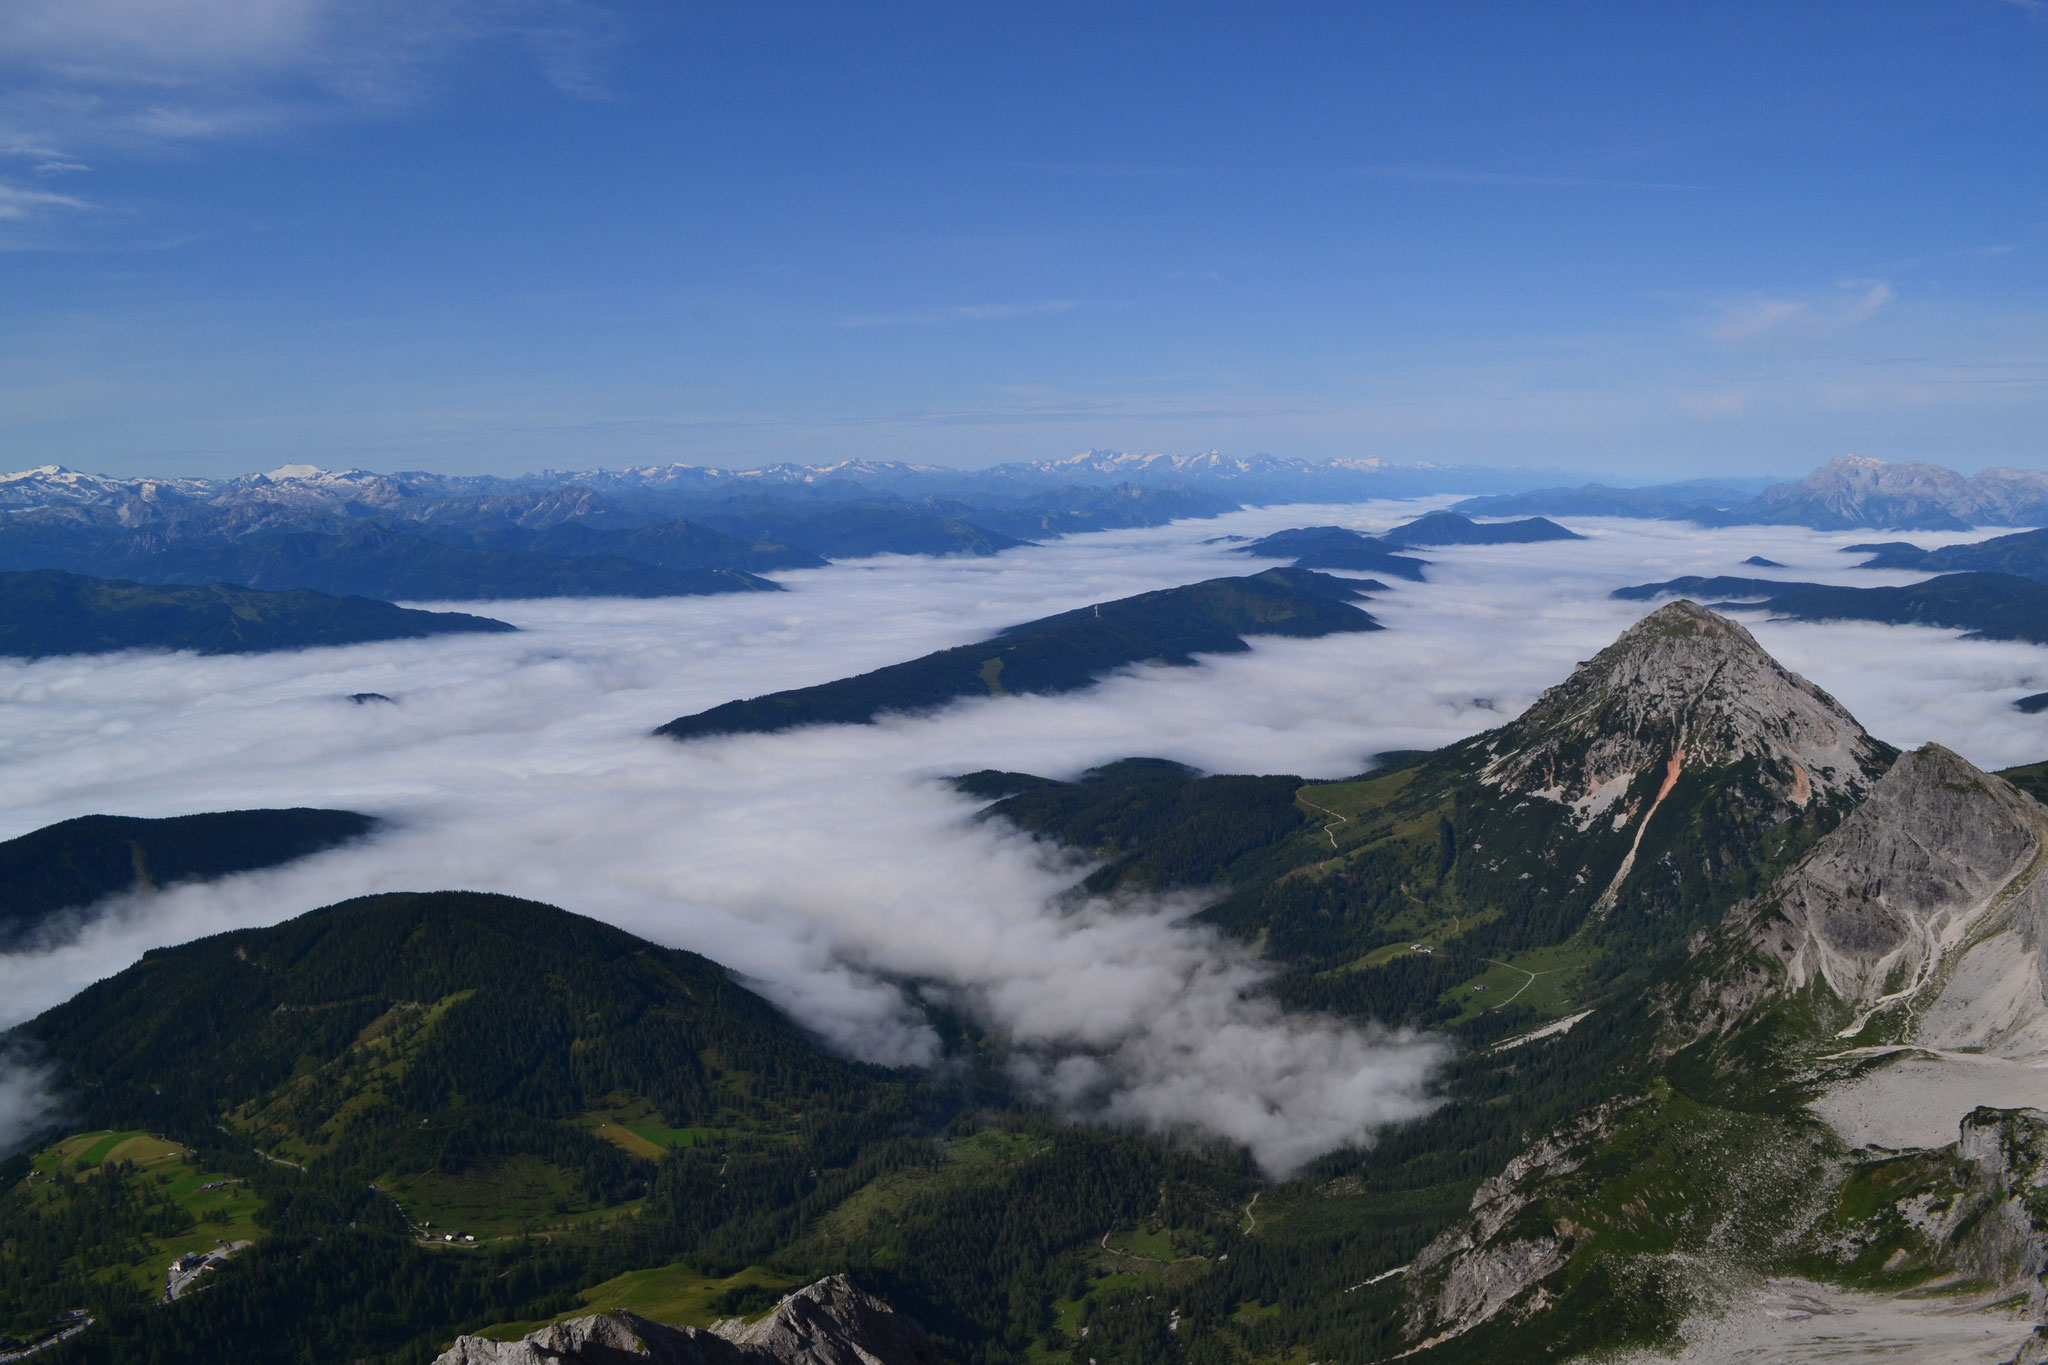 View from Dachstein to the Tauern